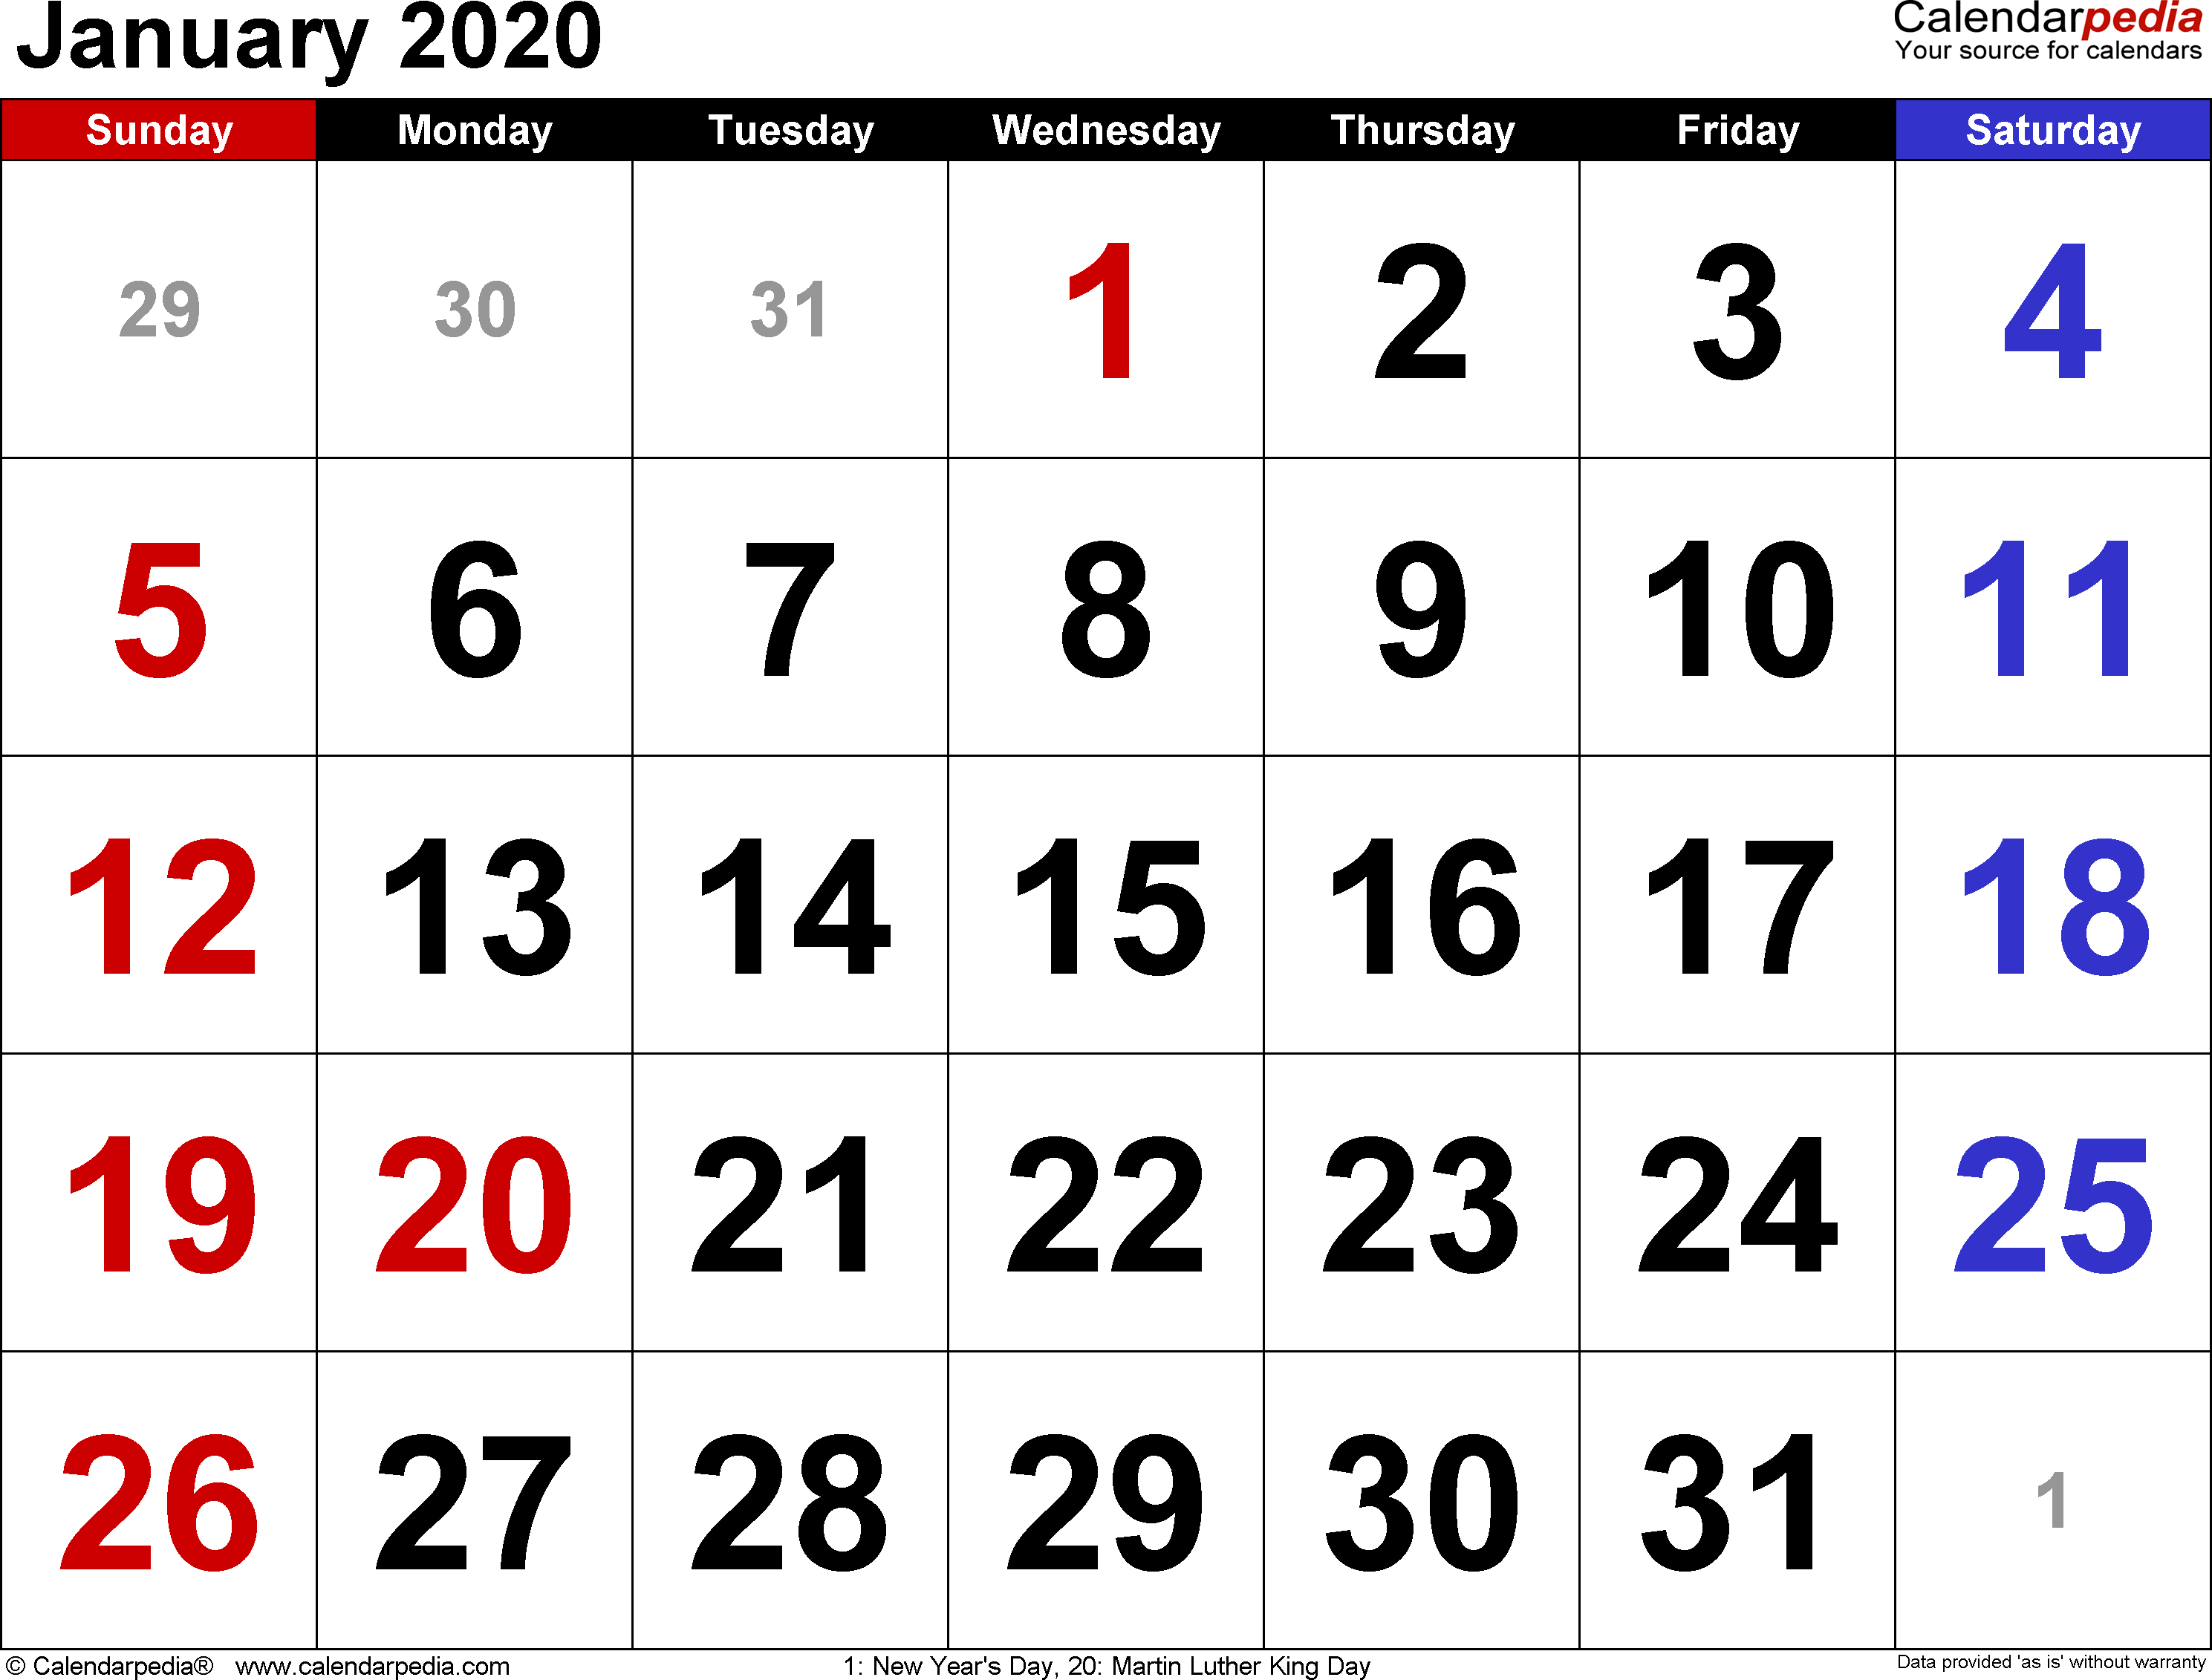 January 2020 Calendar Of Events January 2020 Calendars for Word, Excel & PDF